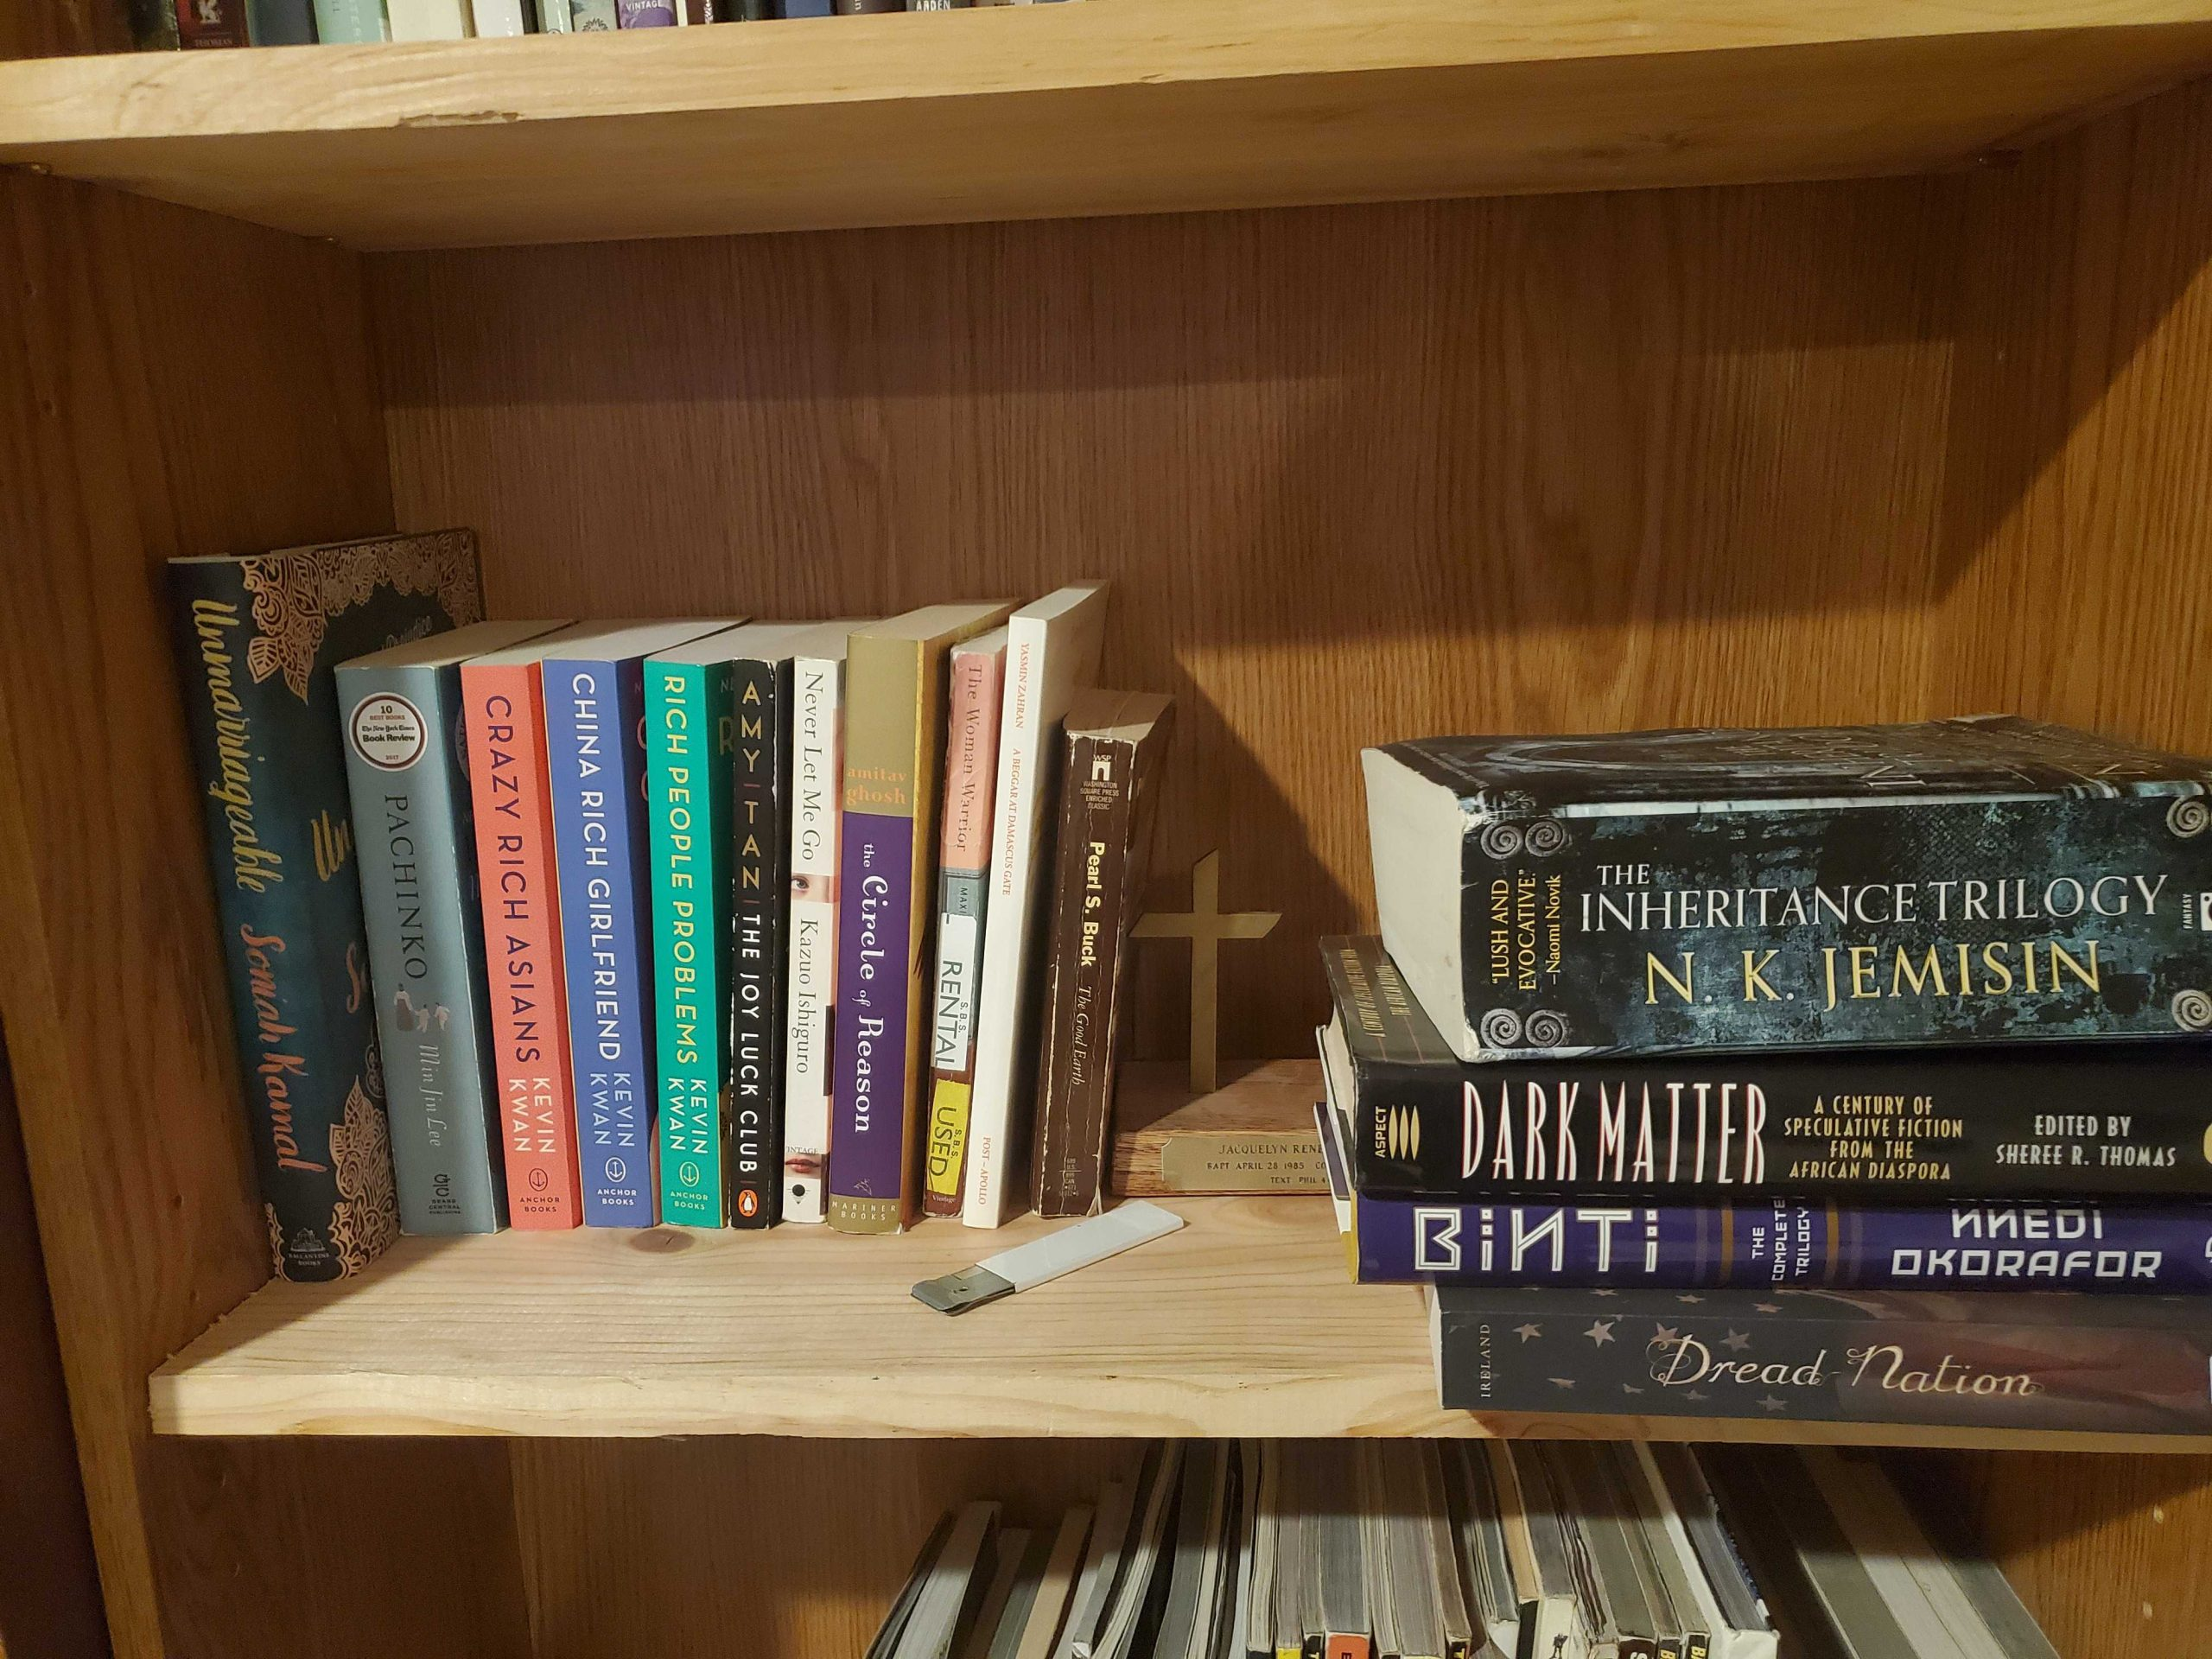 Bookshelf with Crazy Rich Asian series and others